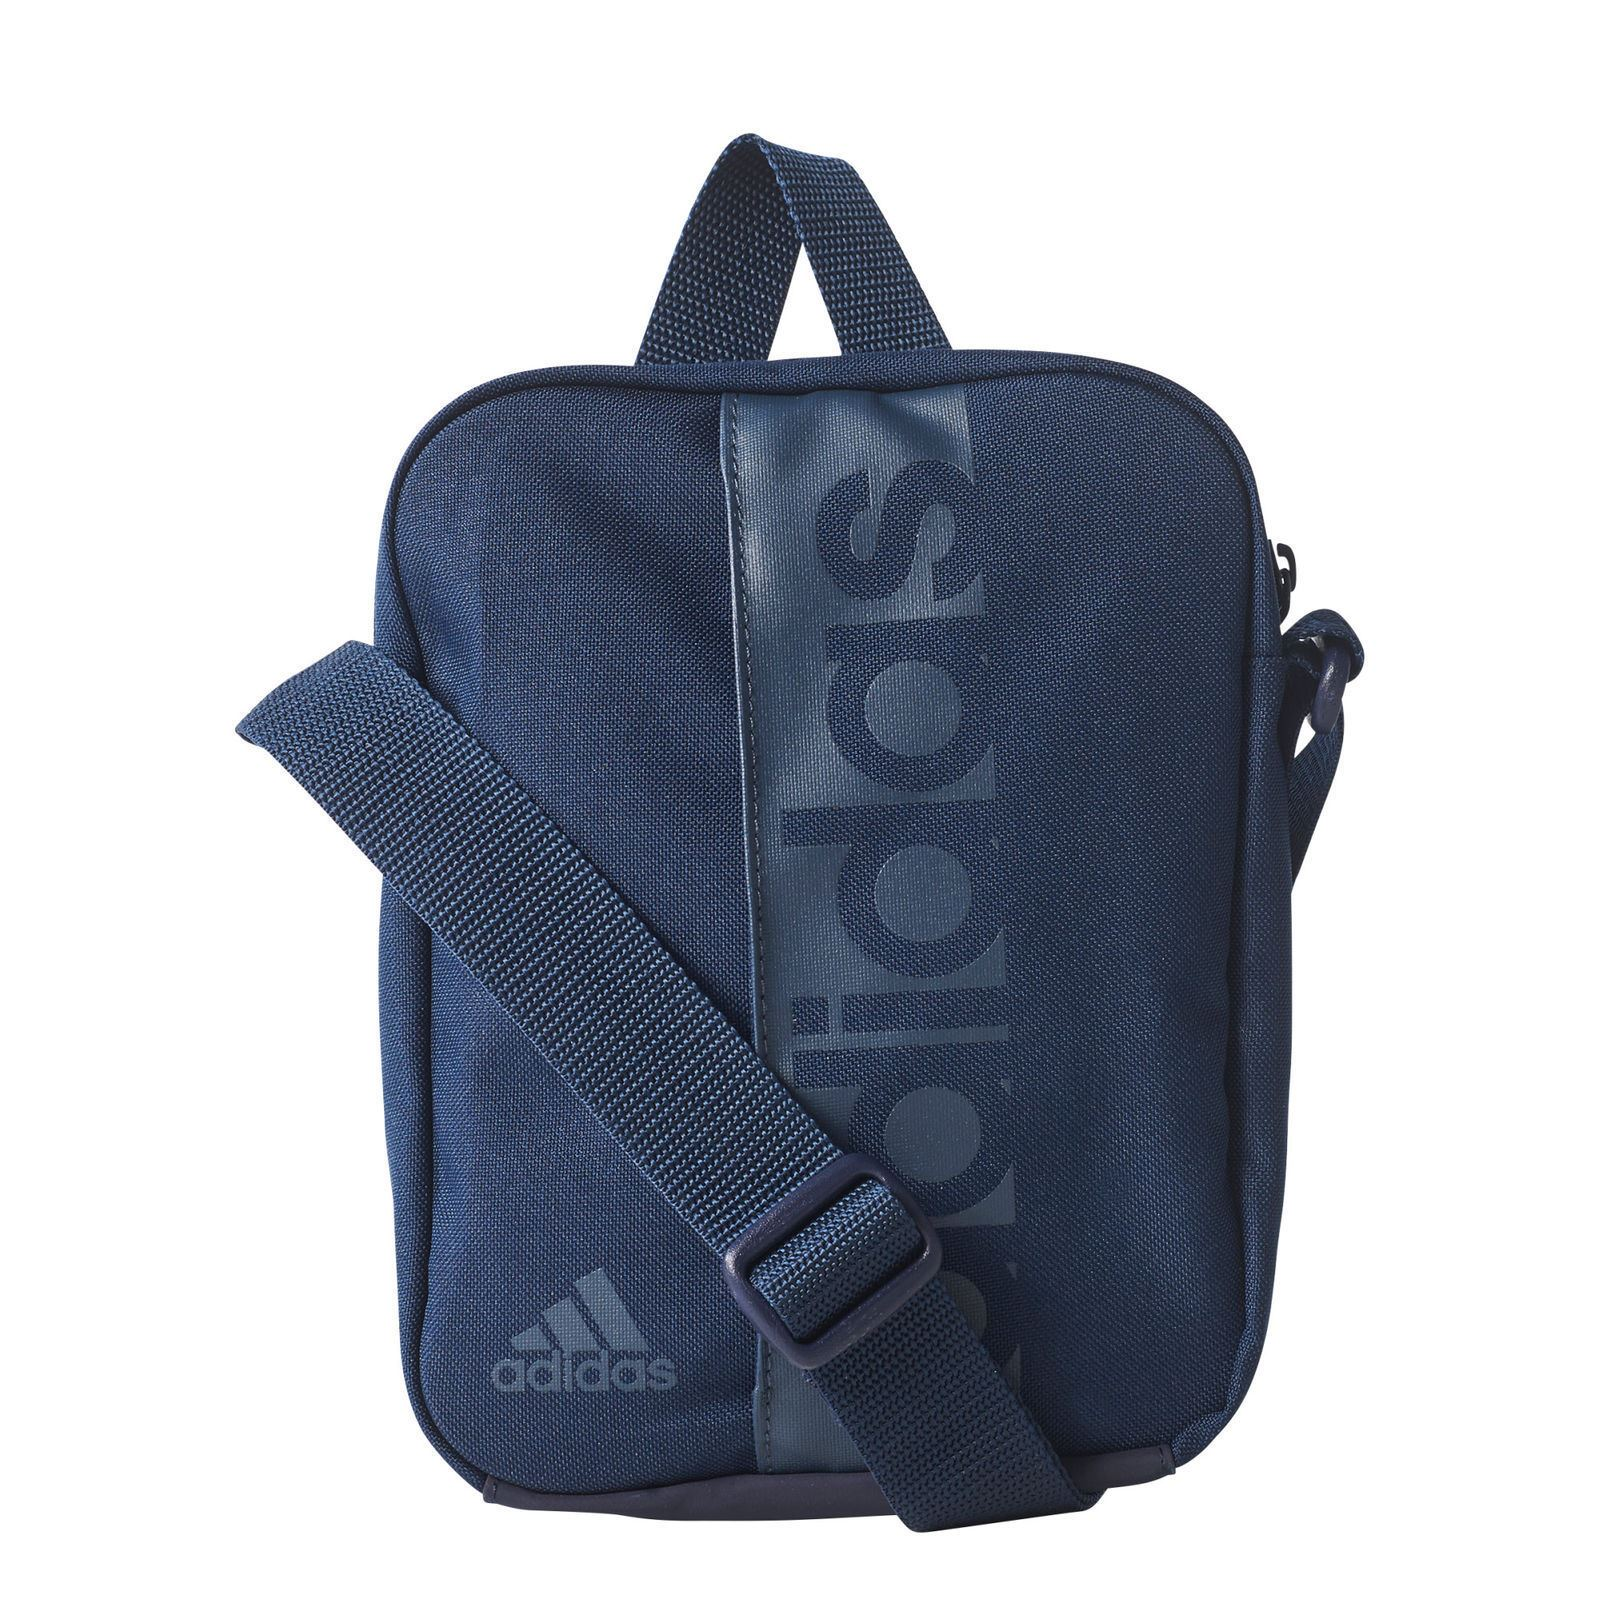 Adidas Essentials Unisex Small Man Bag Shoulder Black Blue   eBay 8b3de3f38b